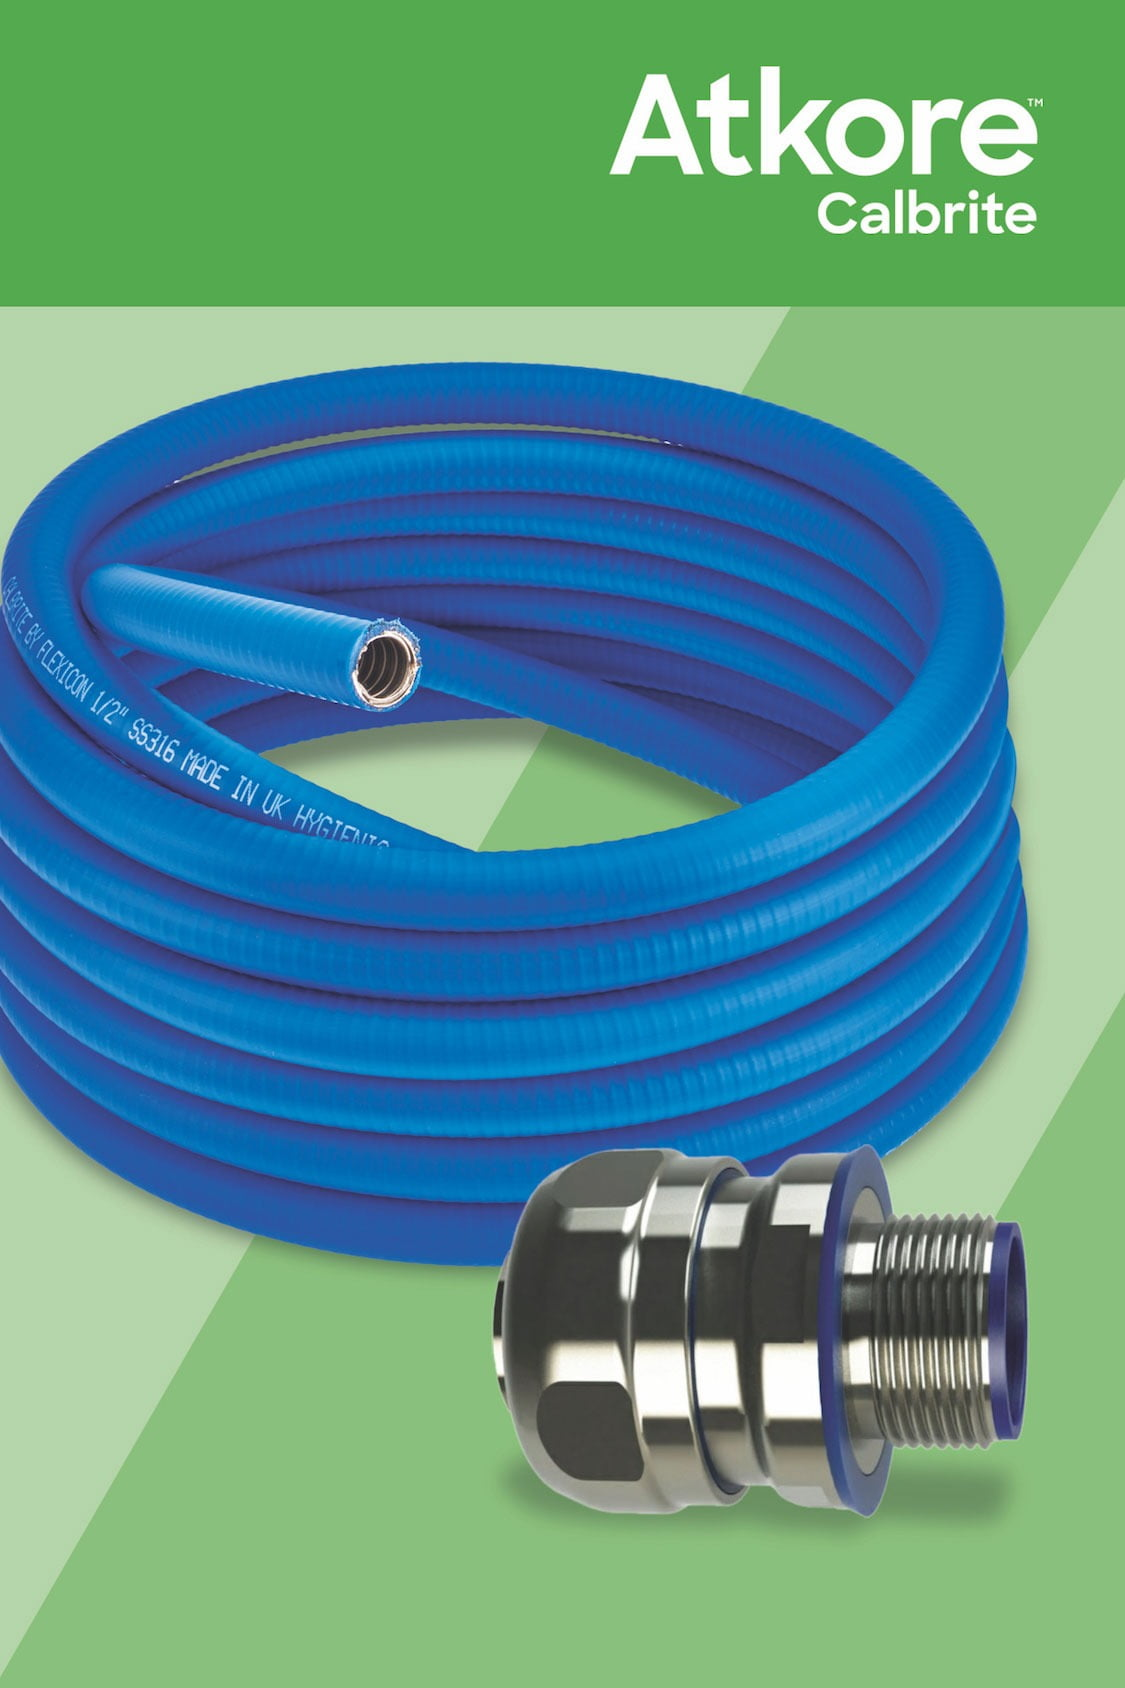 Automotive tire, Networking cables, Product, Wheel, Rim, Cable, Coil